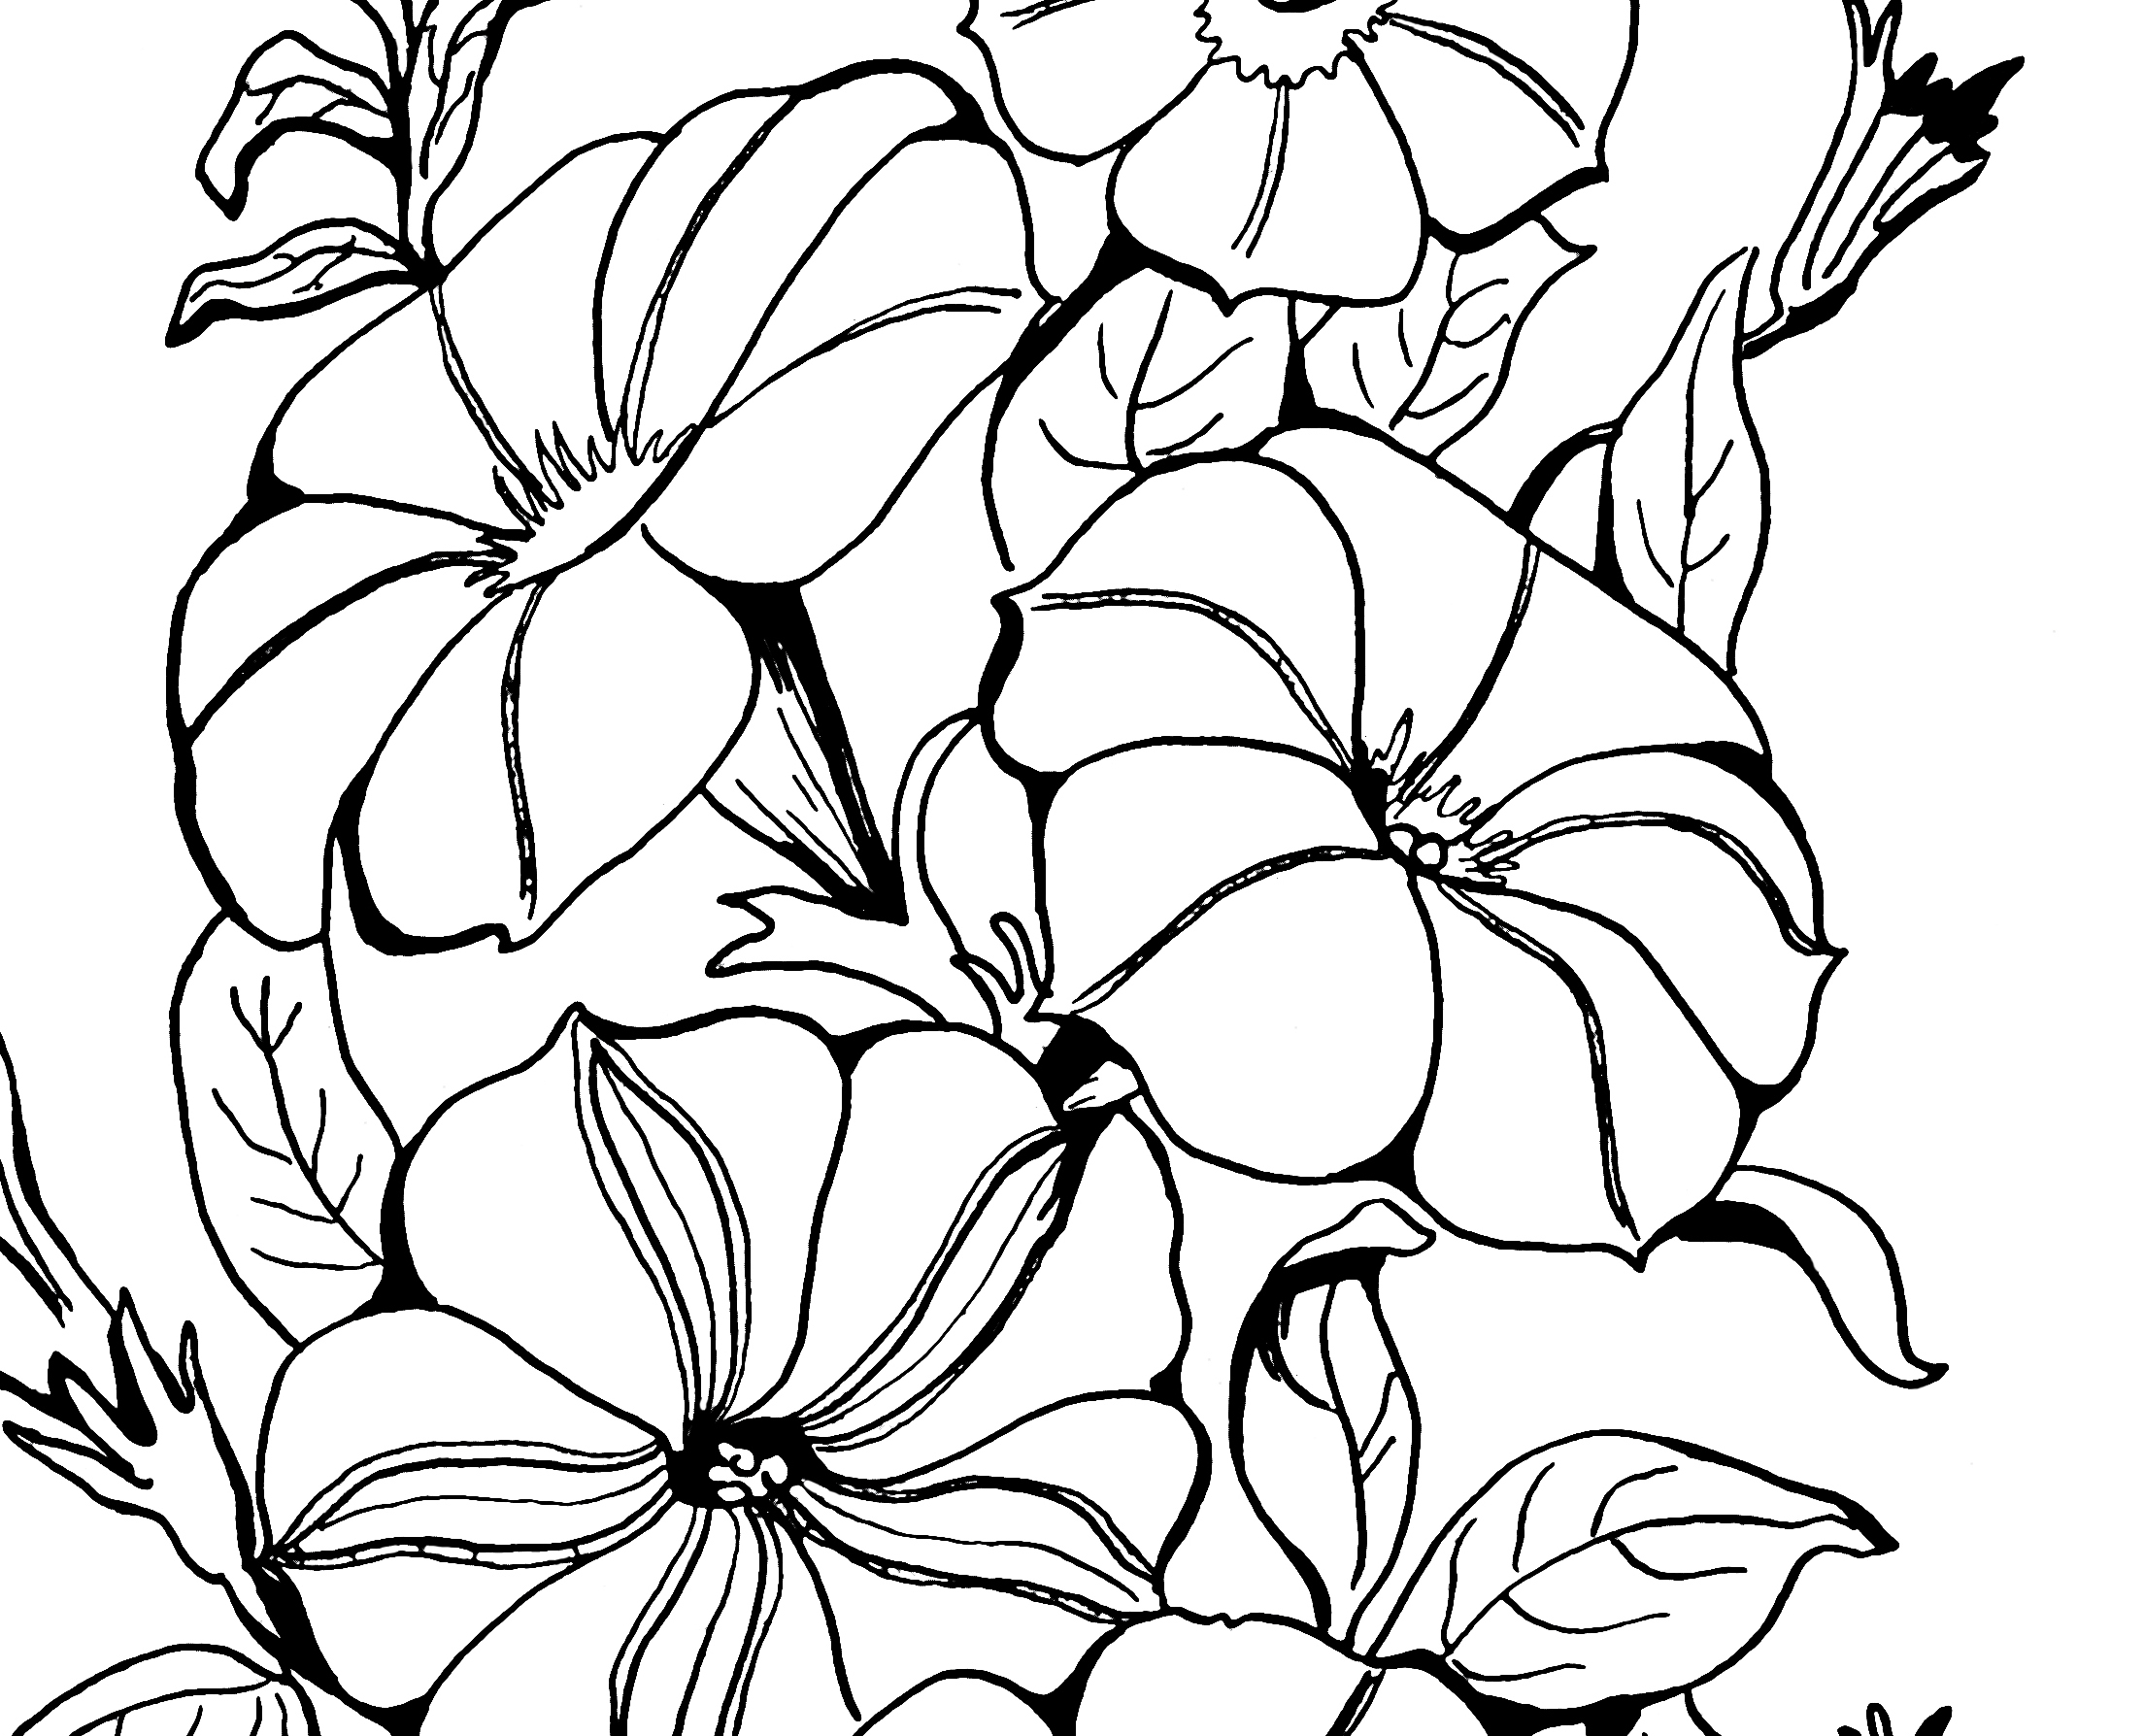 clipart for coloring adult coloring page petunias the graphics fairy coloring for clipart